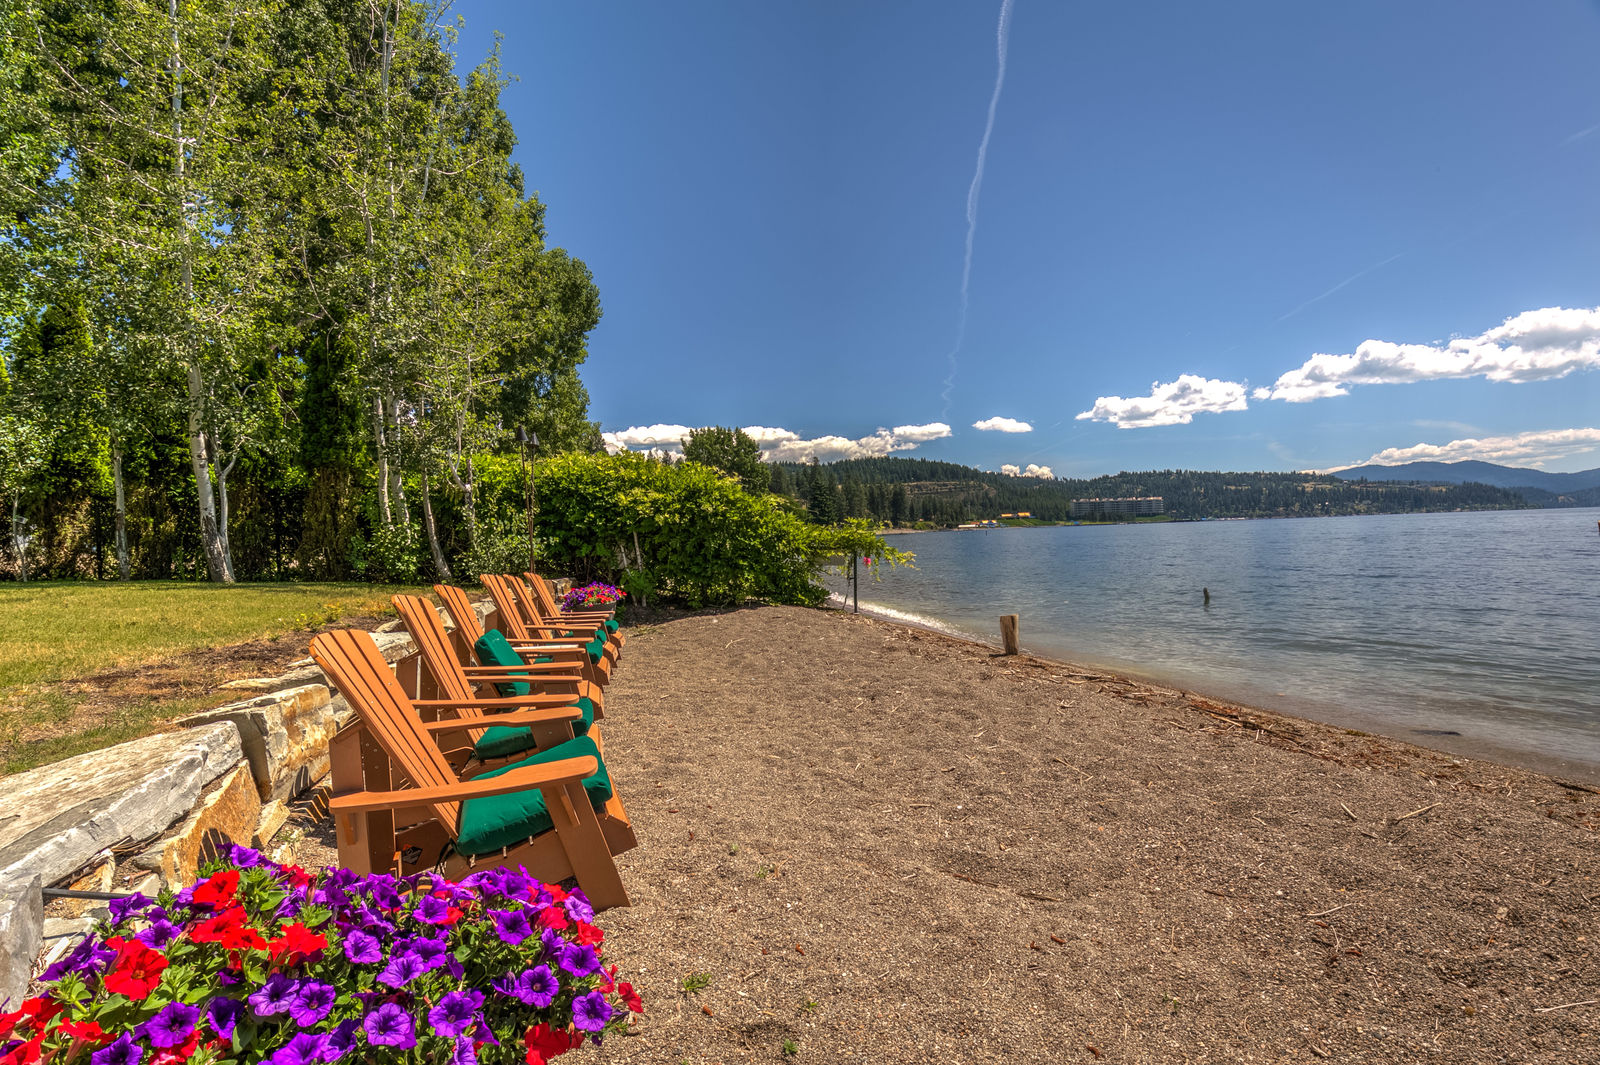 1102 E Lakeshore Dr is located in Coeur d'Alene and features a private dock and sandy beach. The cost?Just $3.95 million!{ } There is even a wine room and cellar perfect for a lake retreat. For more information contact Pearl Realty at 208.762.5500 or 9235 N Government Way Hayden, ID 83835